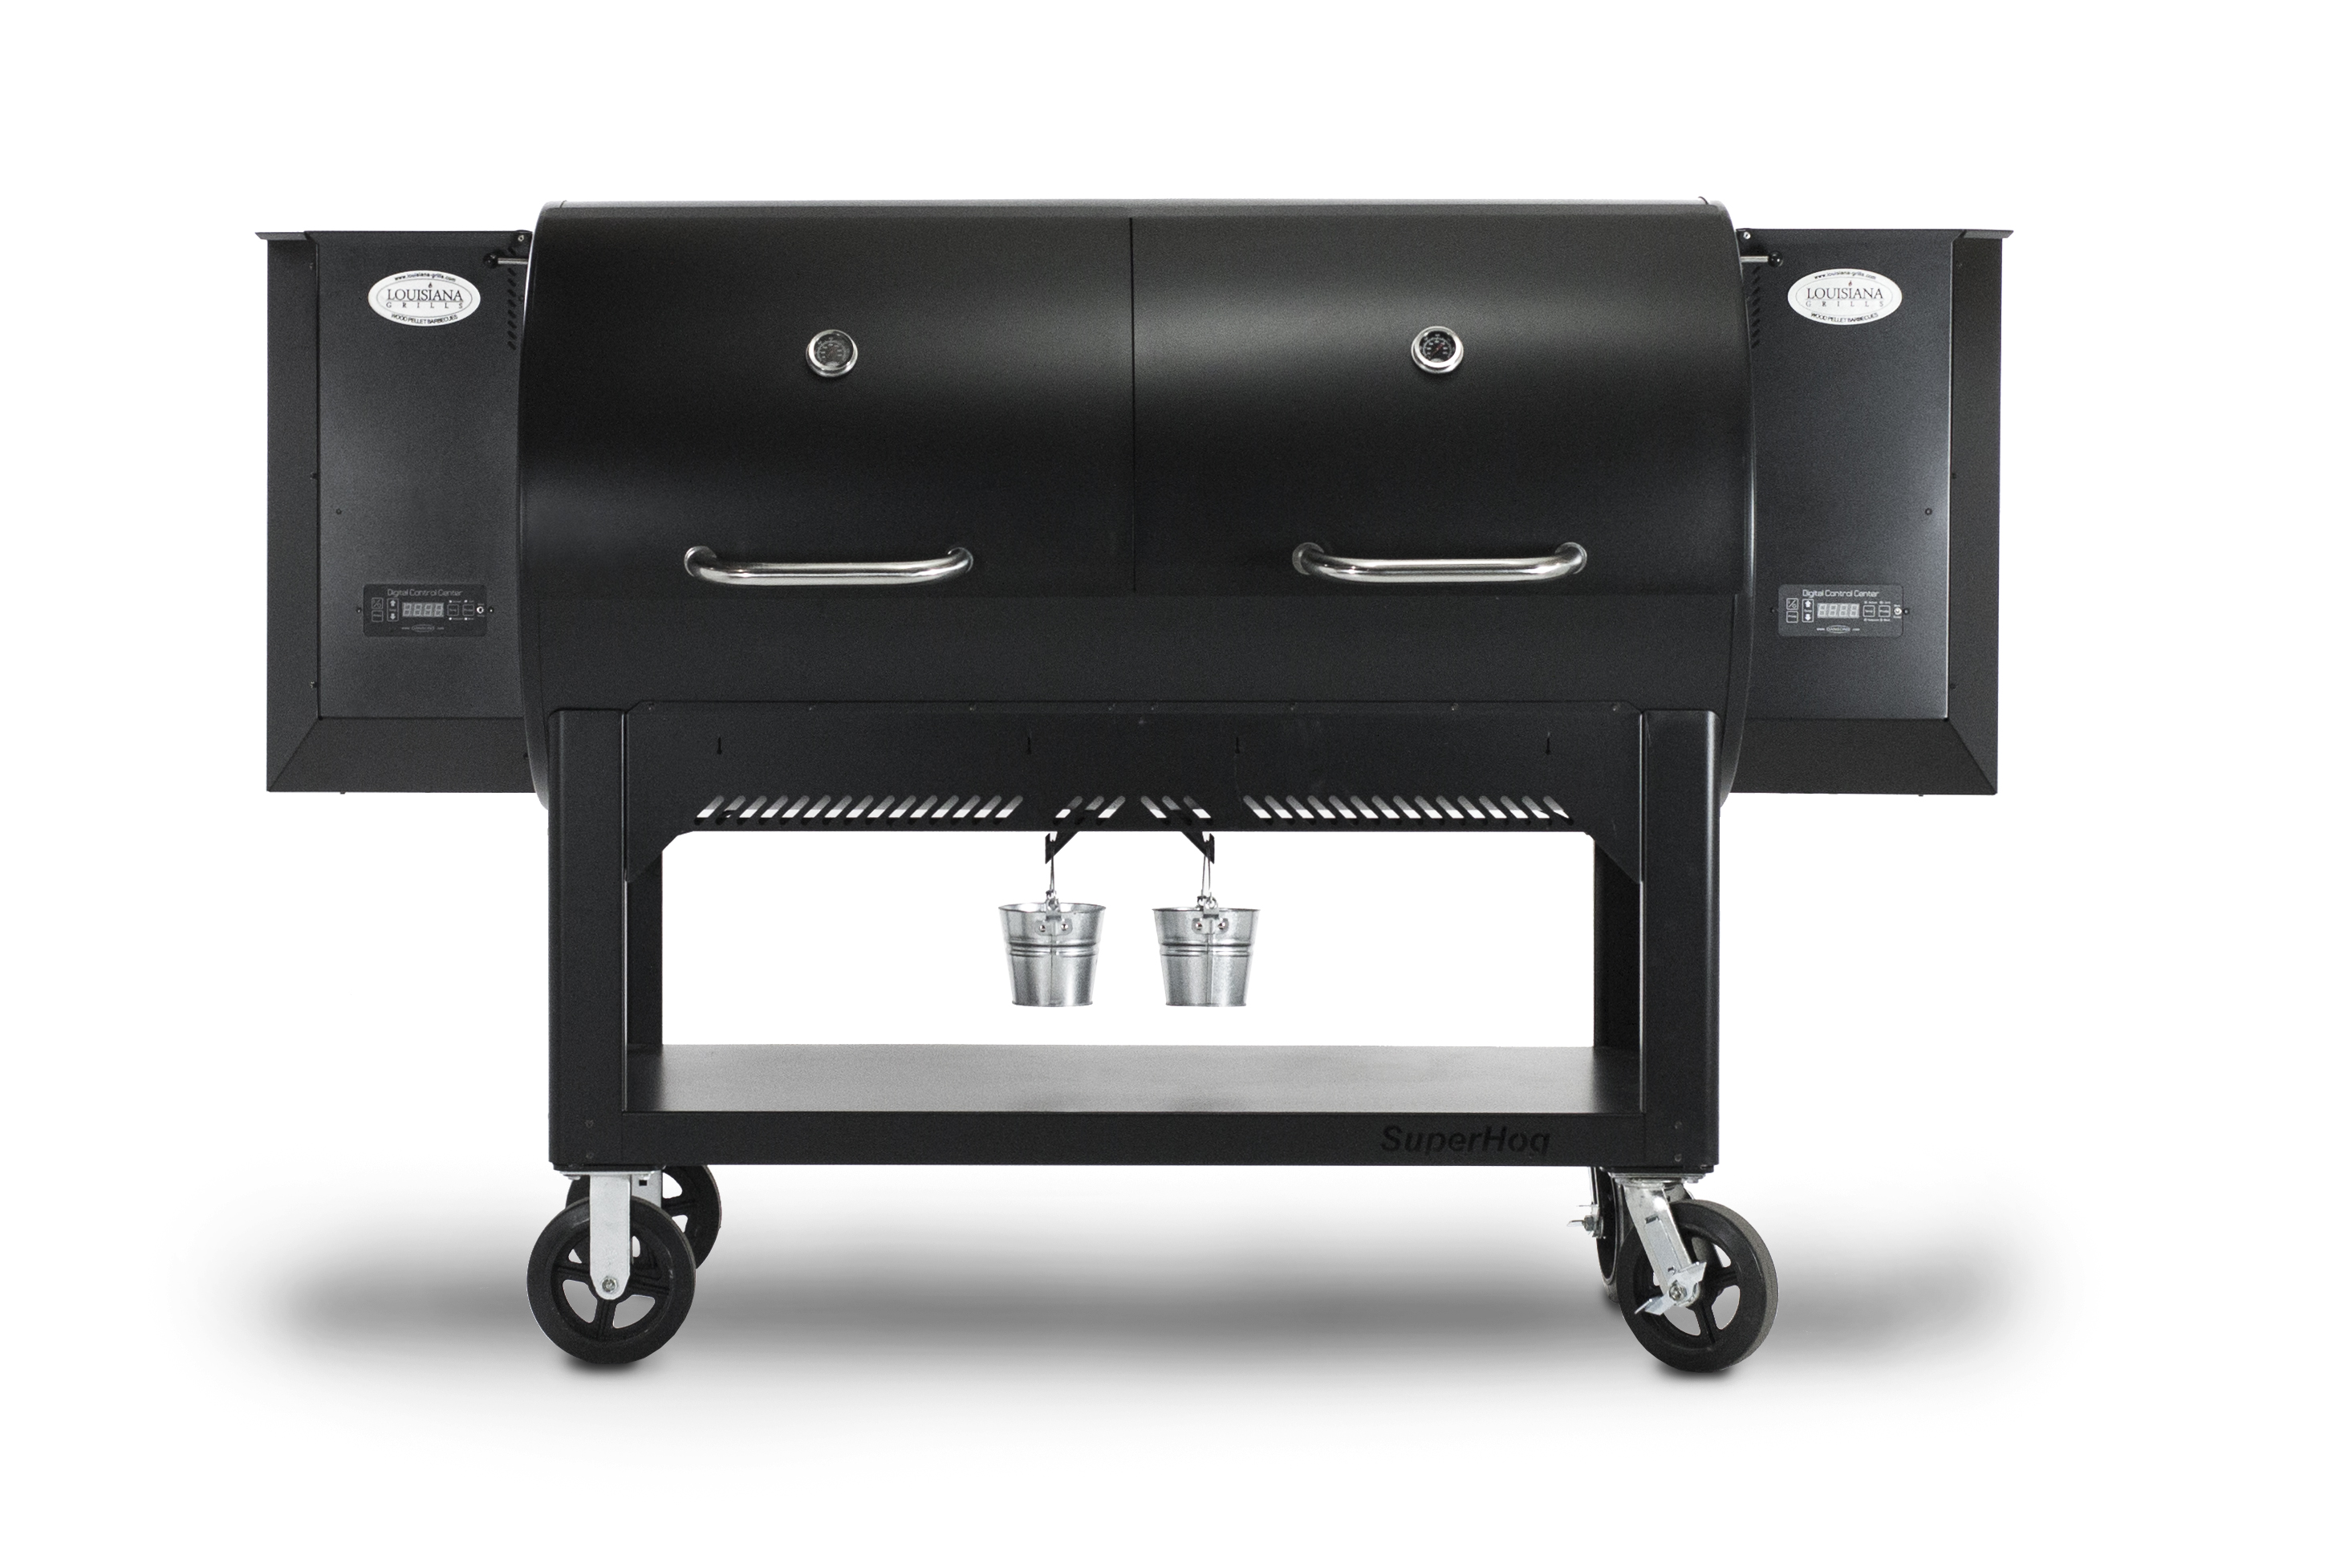 the super hog is the elite wood pellet grill in the country smokers line of grills from louisiana grills lg the super hog is super big with just about - Wood Pellet Grill